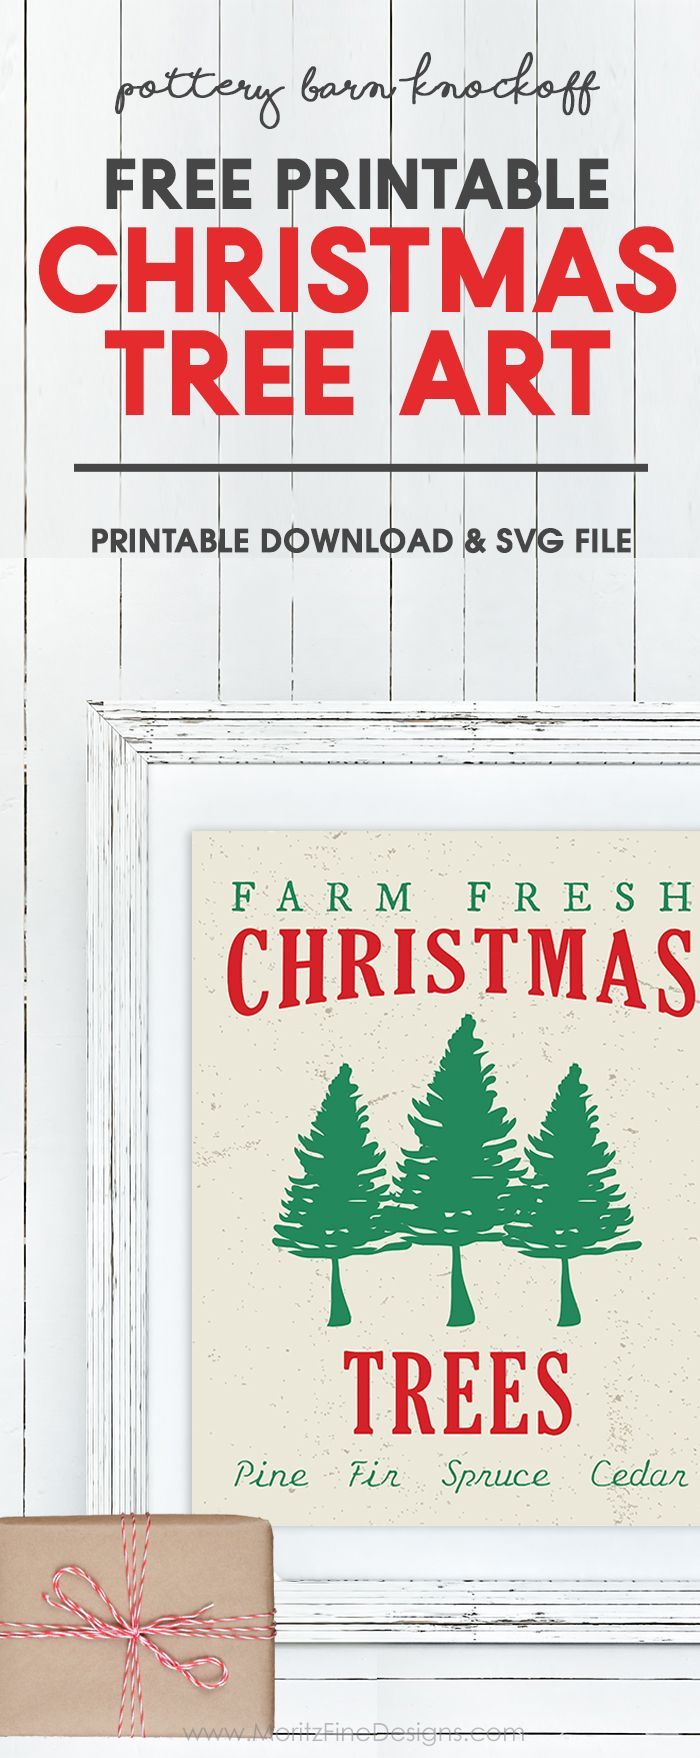 Update your Christmas Decor with this free printable Pottery Barn knockoff Christmas Tree Art Printable. The design is also available in an svg cut file for your Cricut or Silhouette Machine. I made it into an oversize print for poster size!  #christmasdecoration #freeprintable #diychristmasdecor #christmasprintables #christmastree #christmasdecor